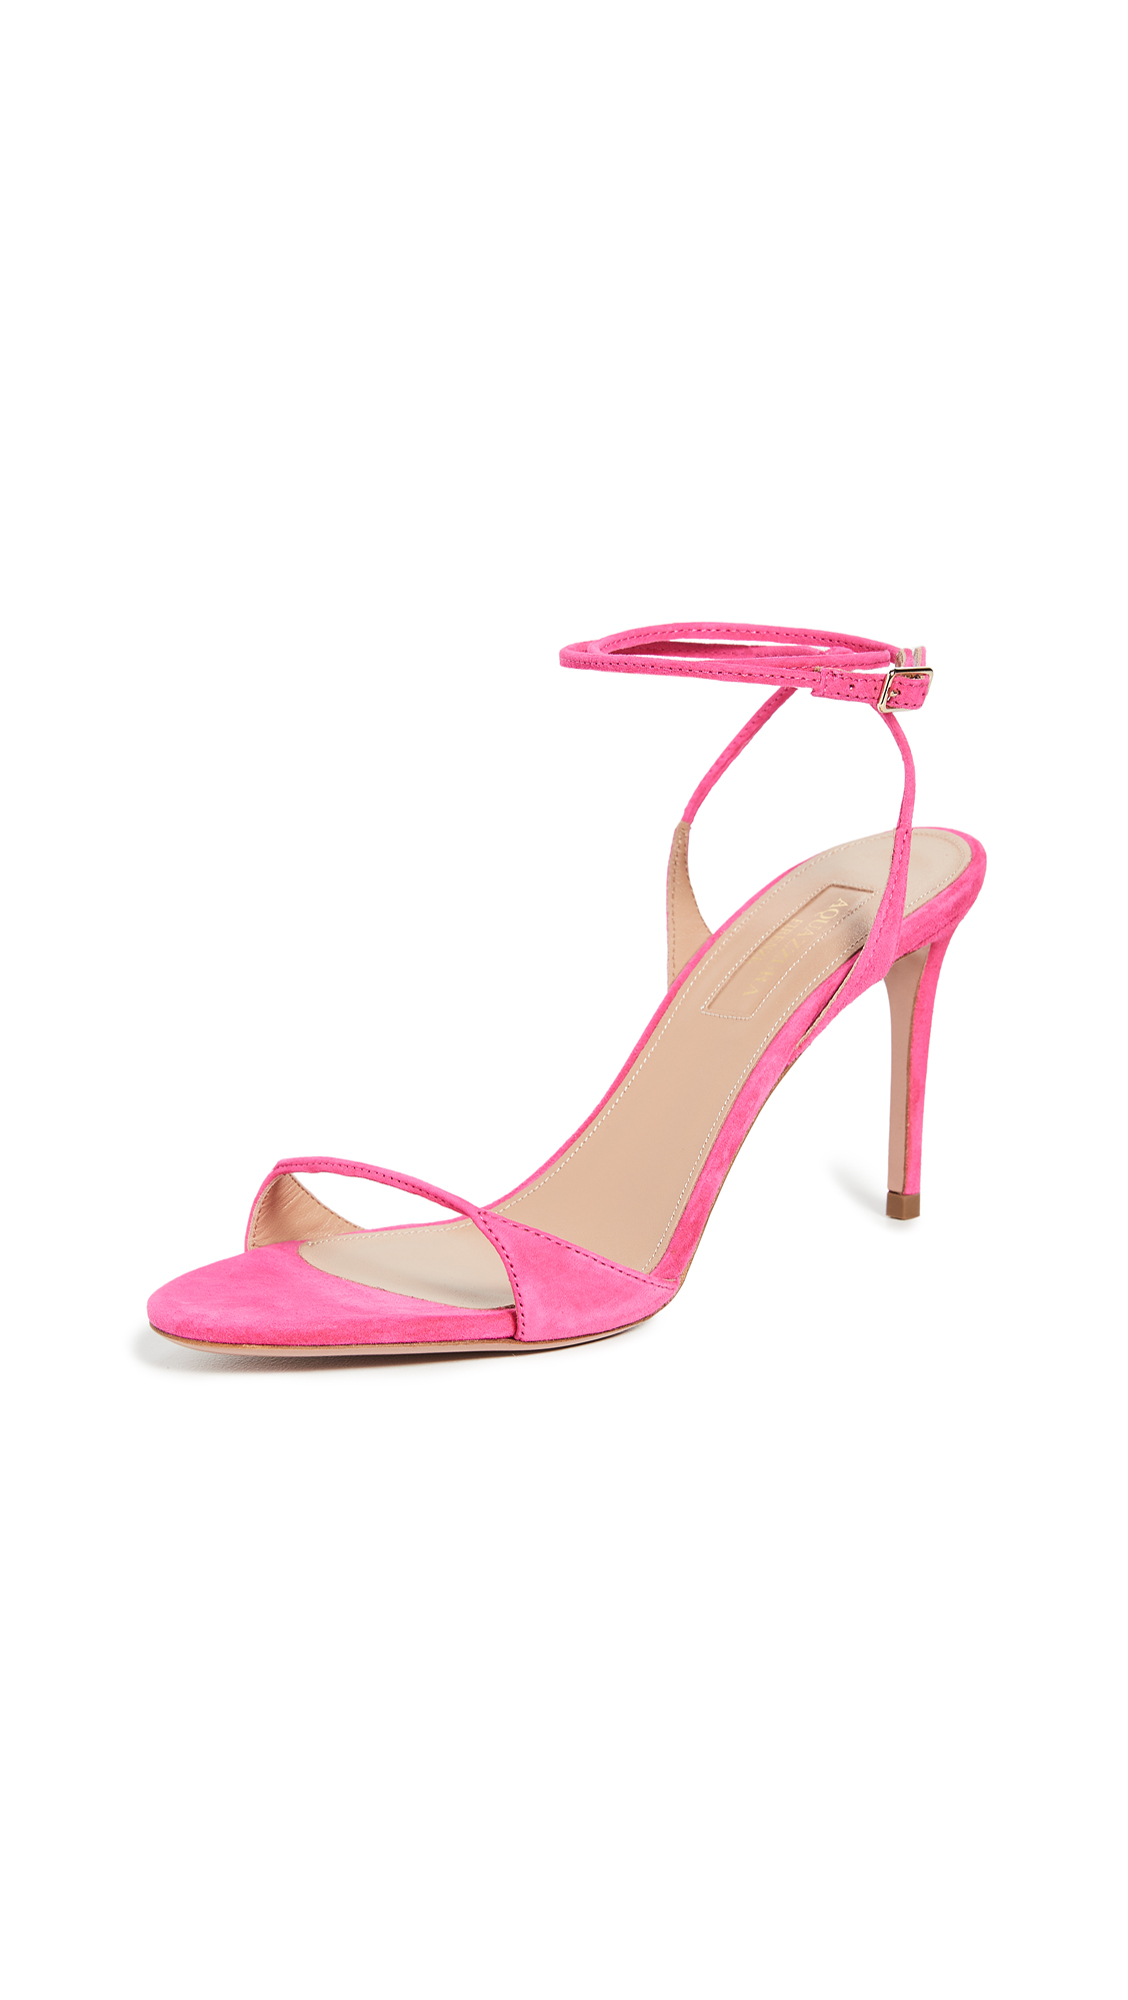 Buy Aquazzura Minute Sandals 85mm online, shop Aquazzura